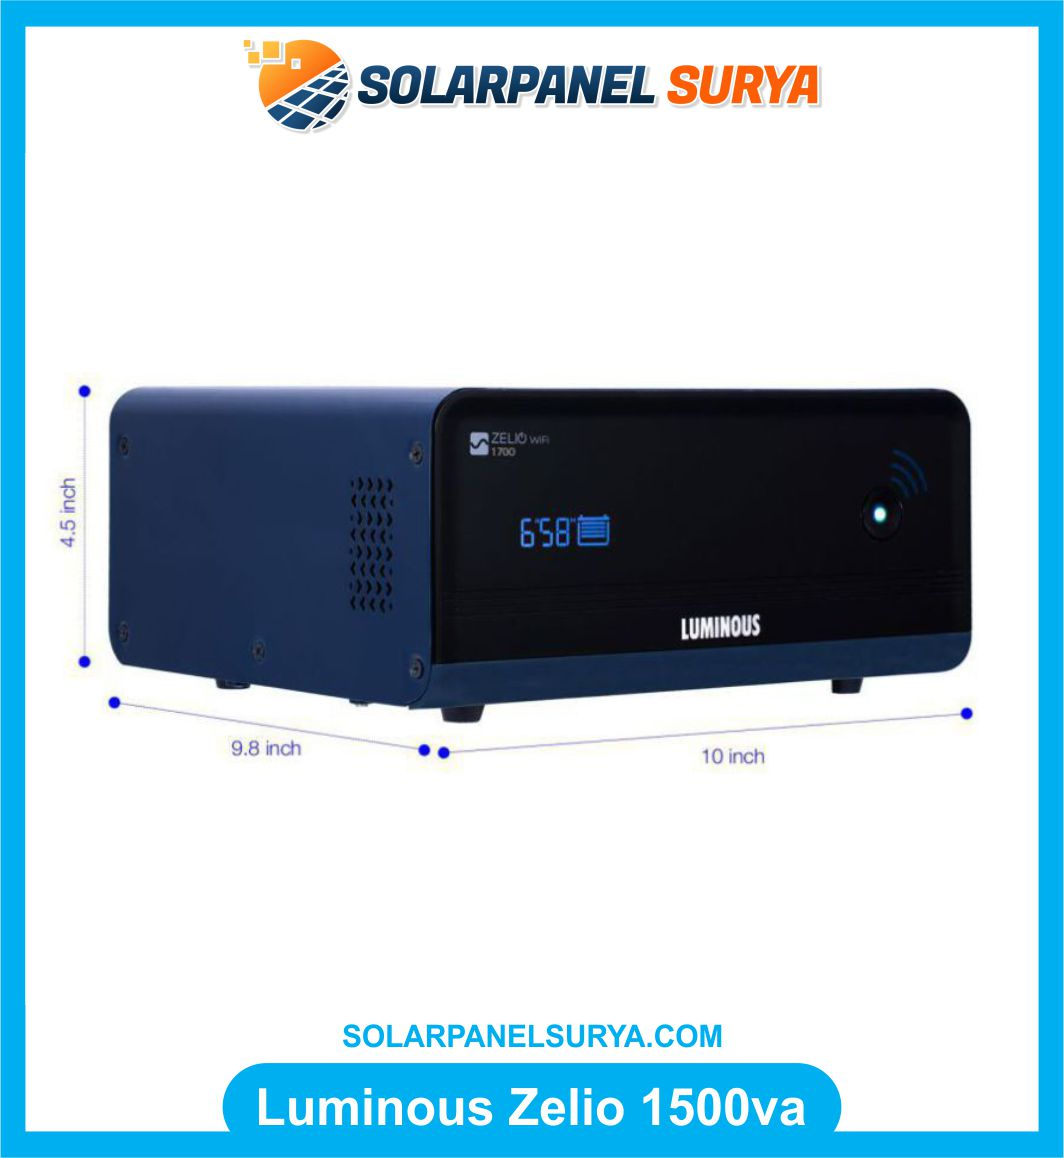 Luminous Zelio 1500va Inverter Pure Sine Wave murah bergaransi